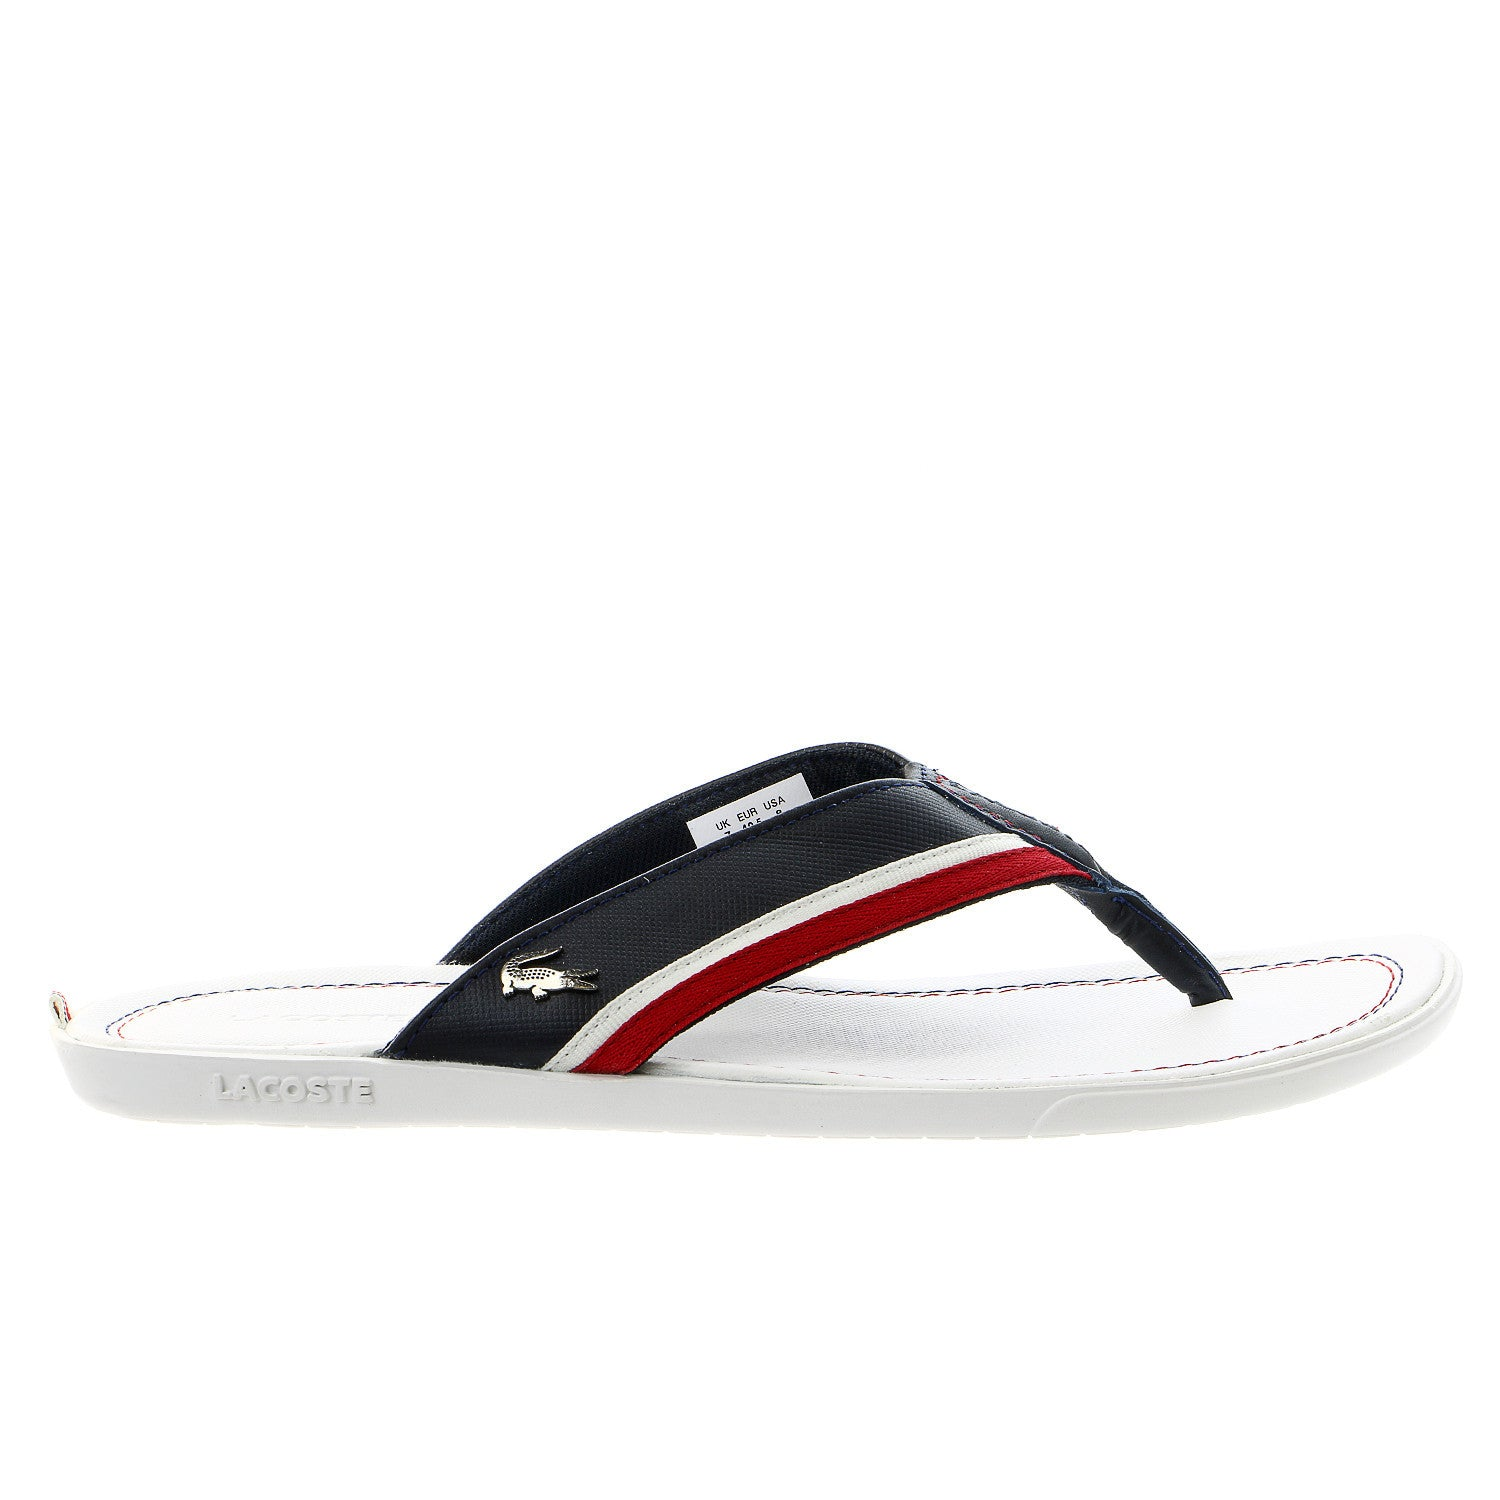 Carros 2- Navy/Off White sandals